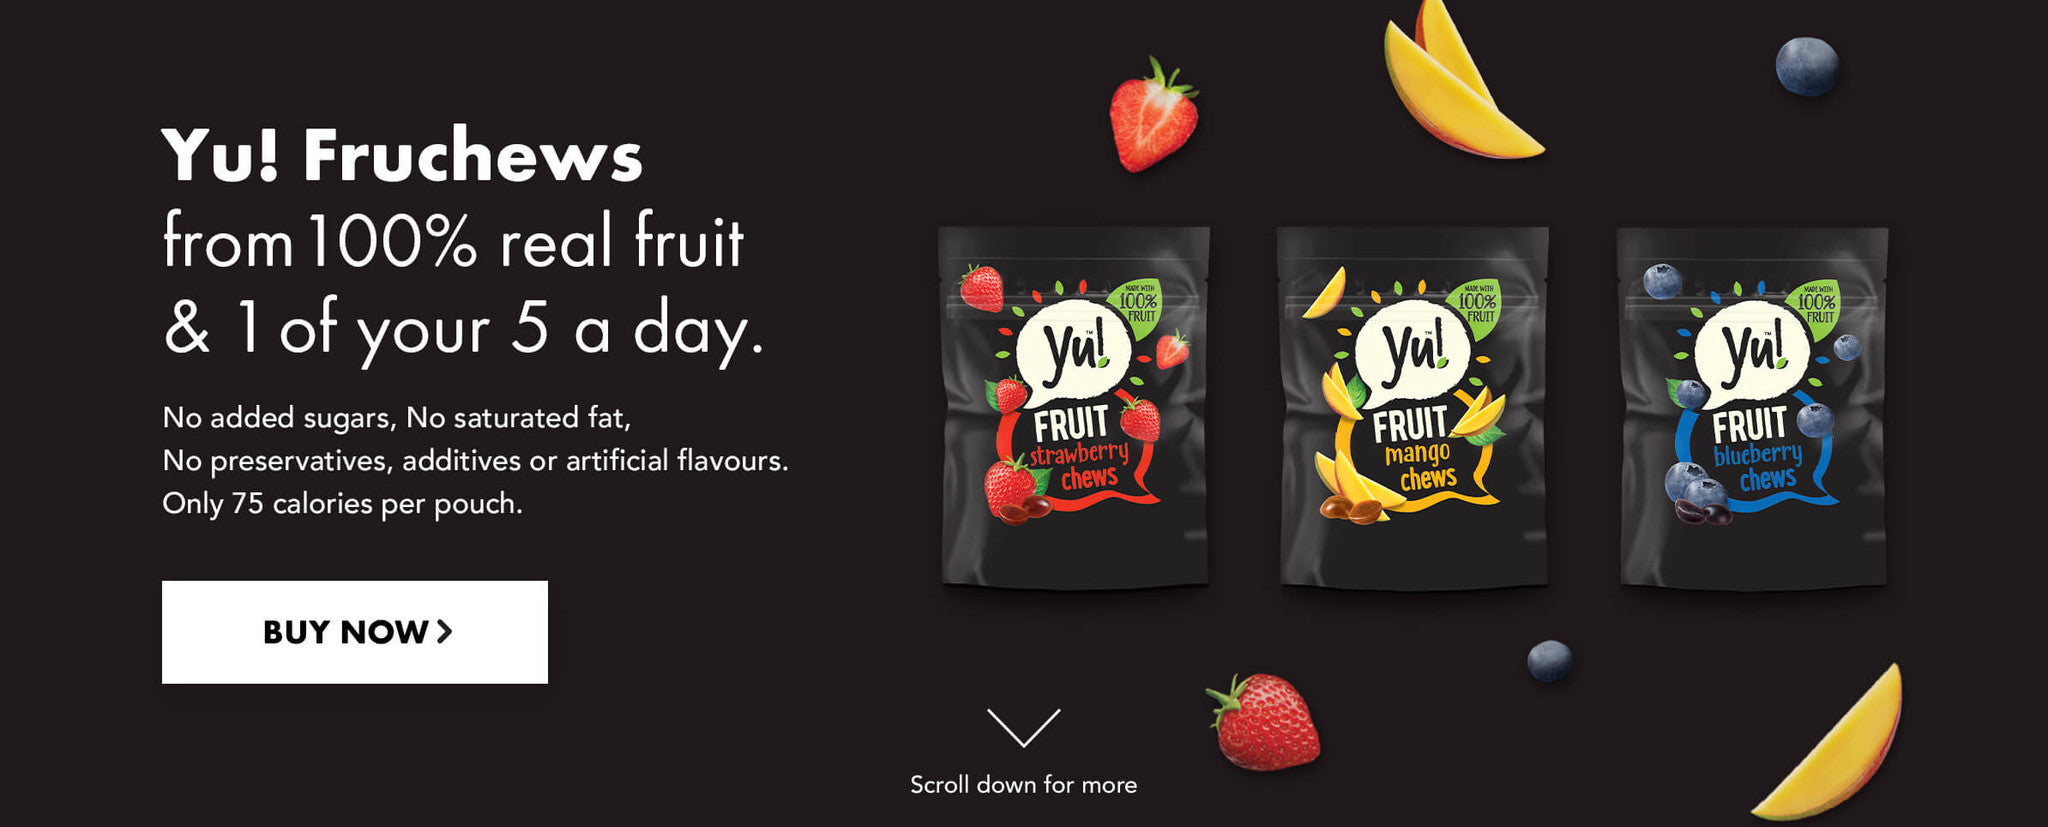 Yu! Fruchews from 100% real fruit & 1 of your 5 a day. No added sugars. No preservatives. Only 75 calories per pouch.